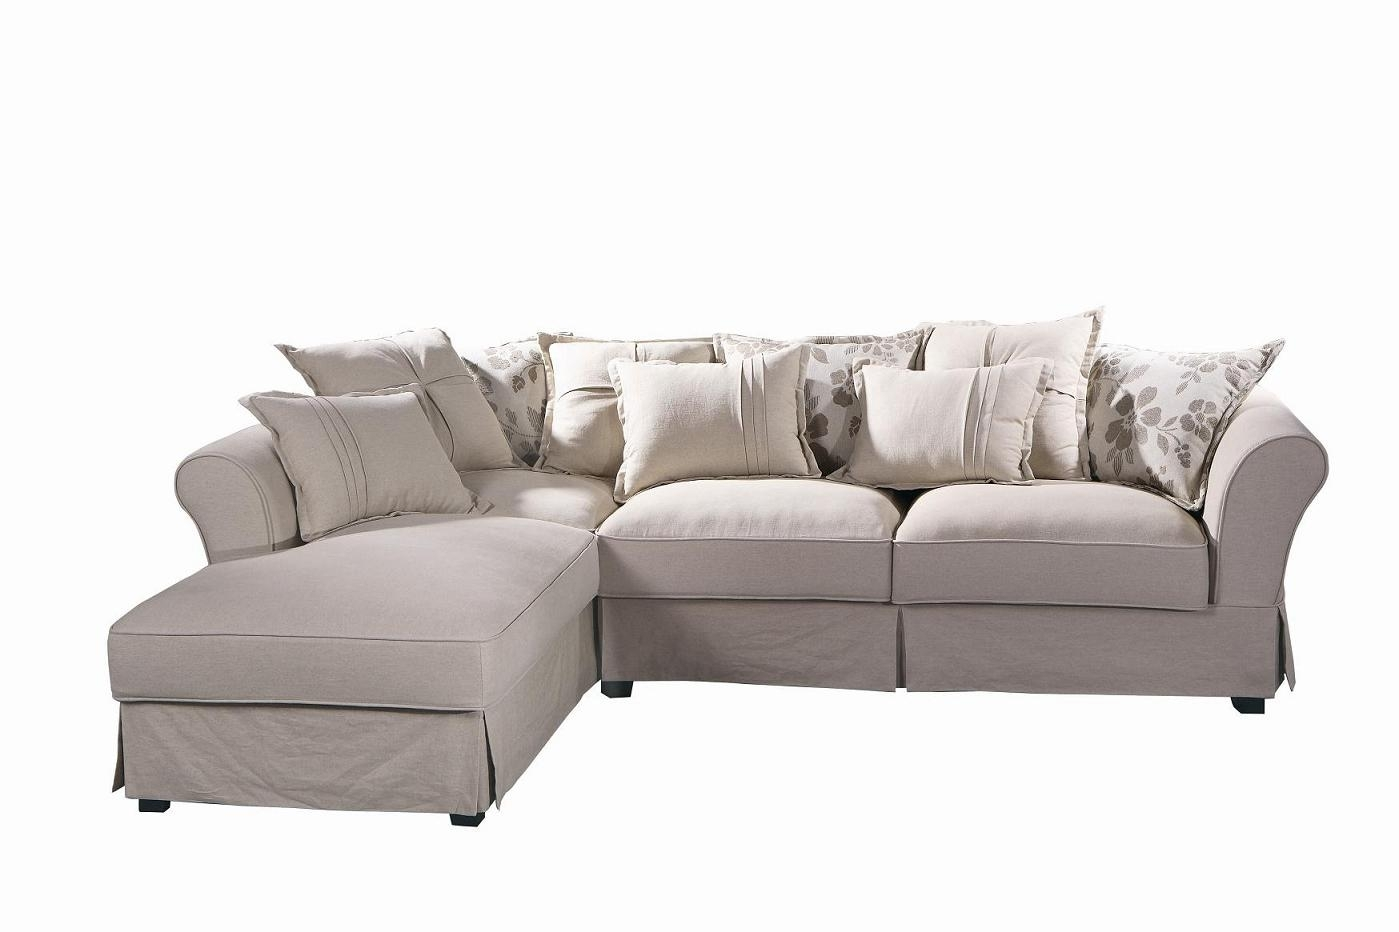 Uncategorized. Inspirations Affordable Sectionals: Affordable for Affordable Sectional Sofas (Image 14 of 15)